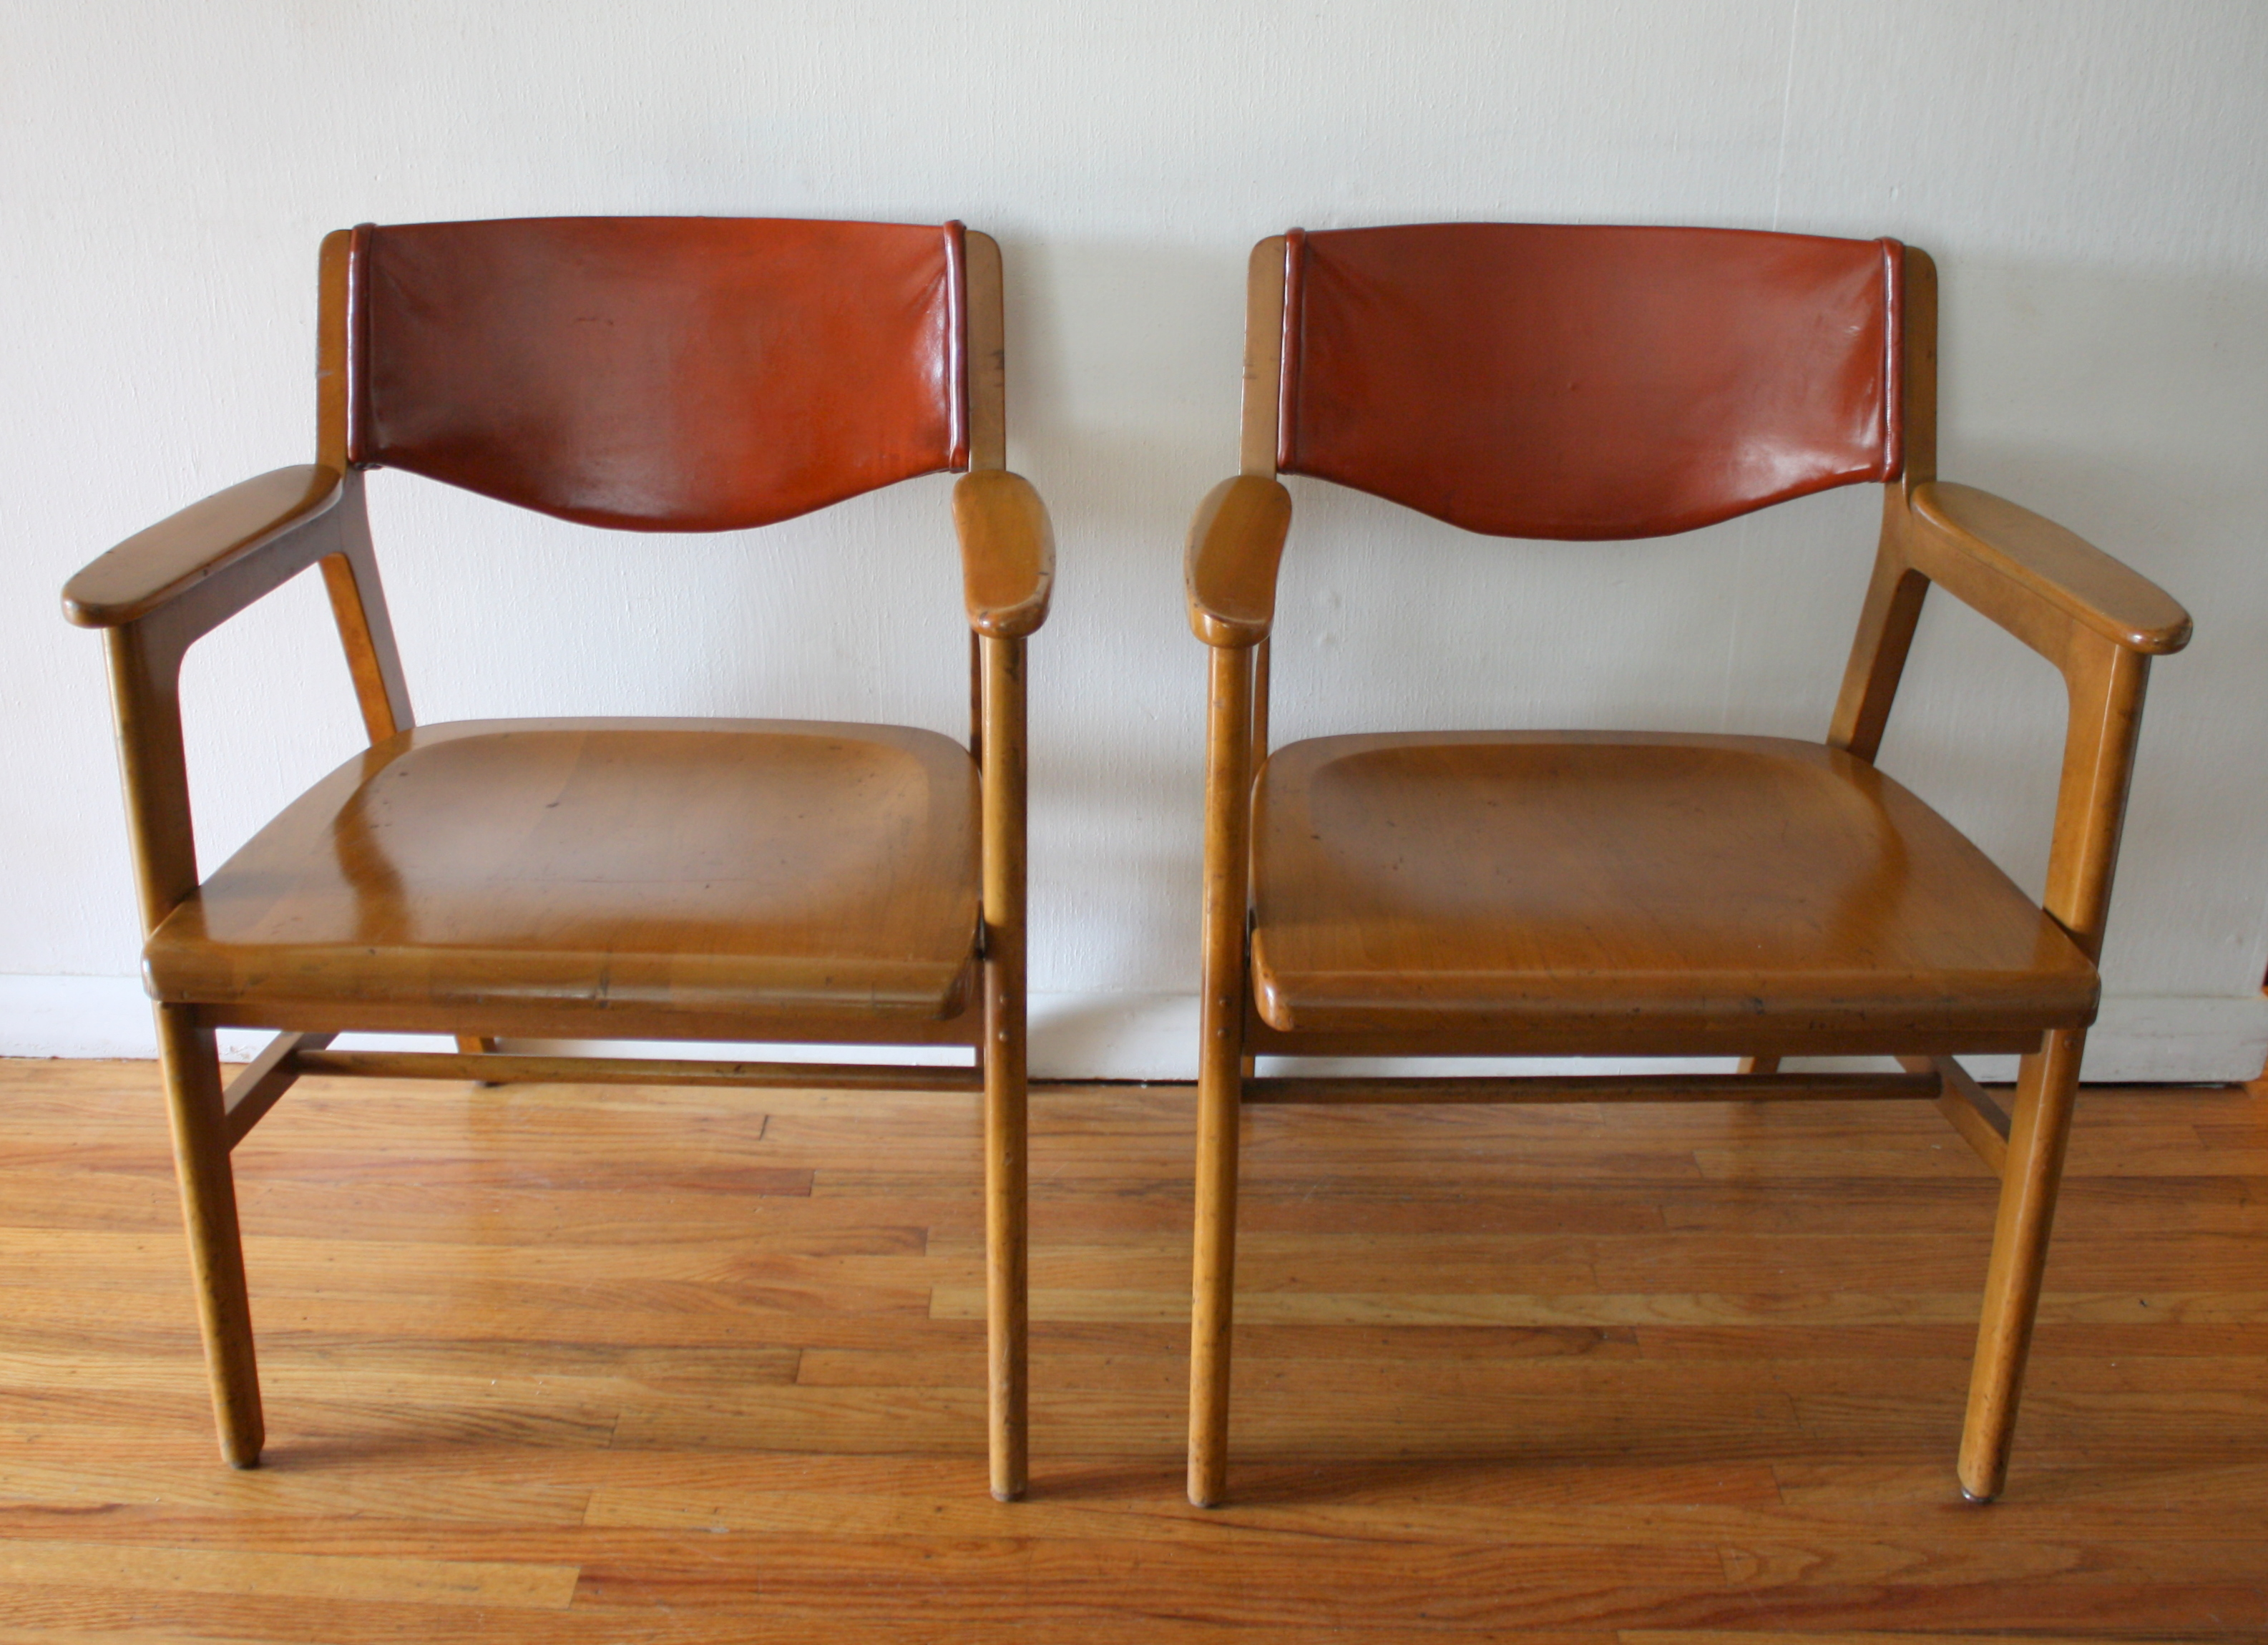 Midcentury Chairs Mid Century Modern Gunlocke Chairs Picked Vintage